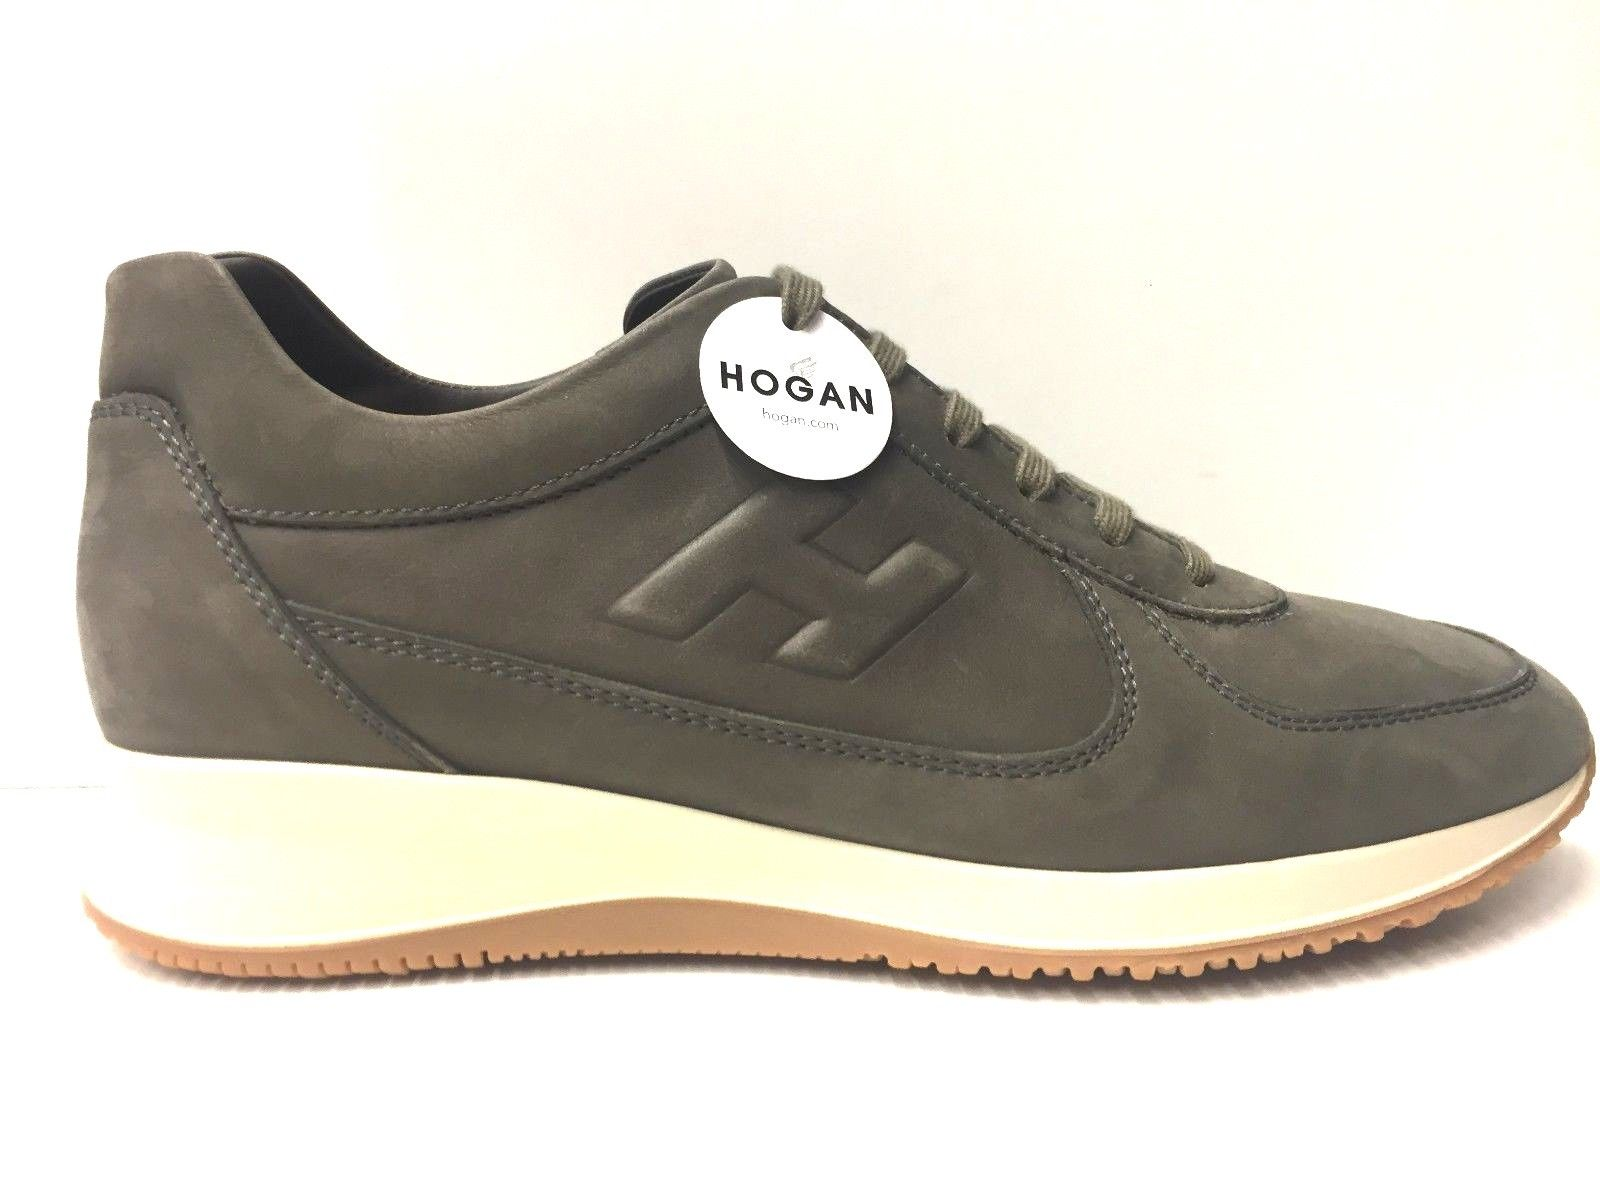 SCARPE SNEAKERS CASUAL UOMO HOGAN ORIGINALE HXMOO SHOES PELLE P/E